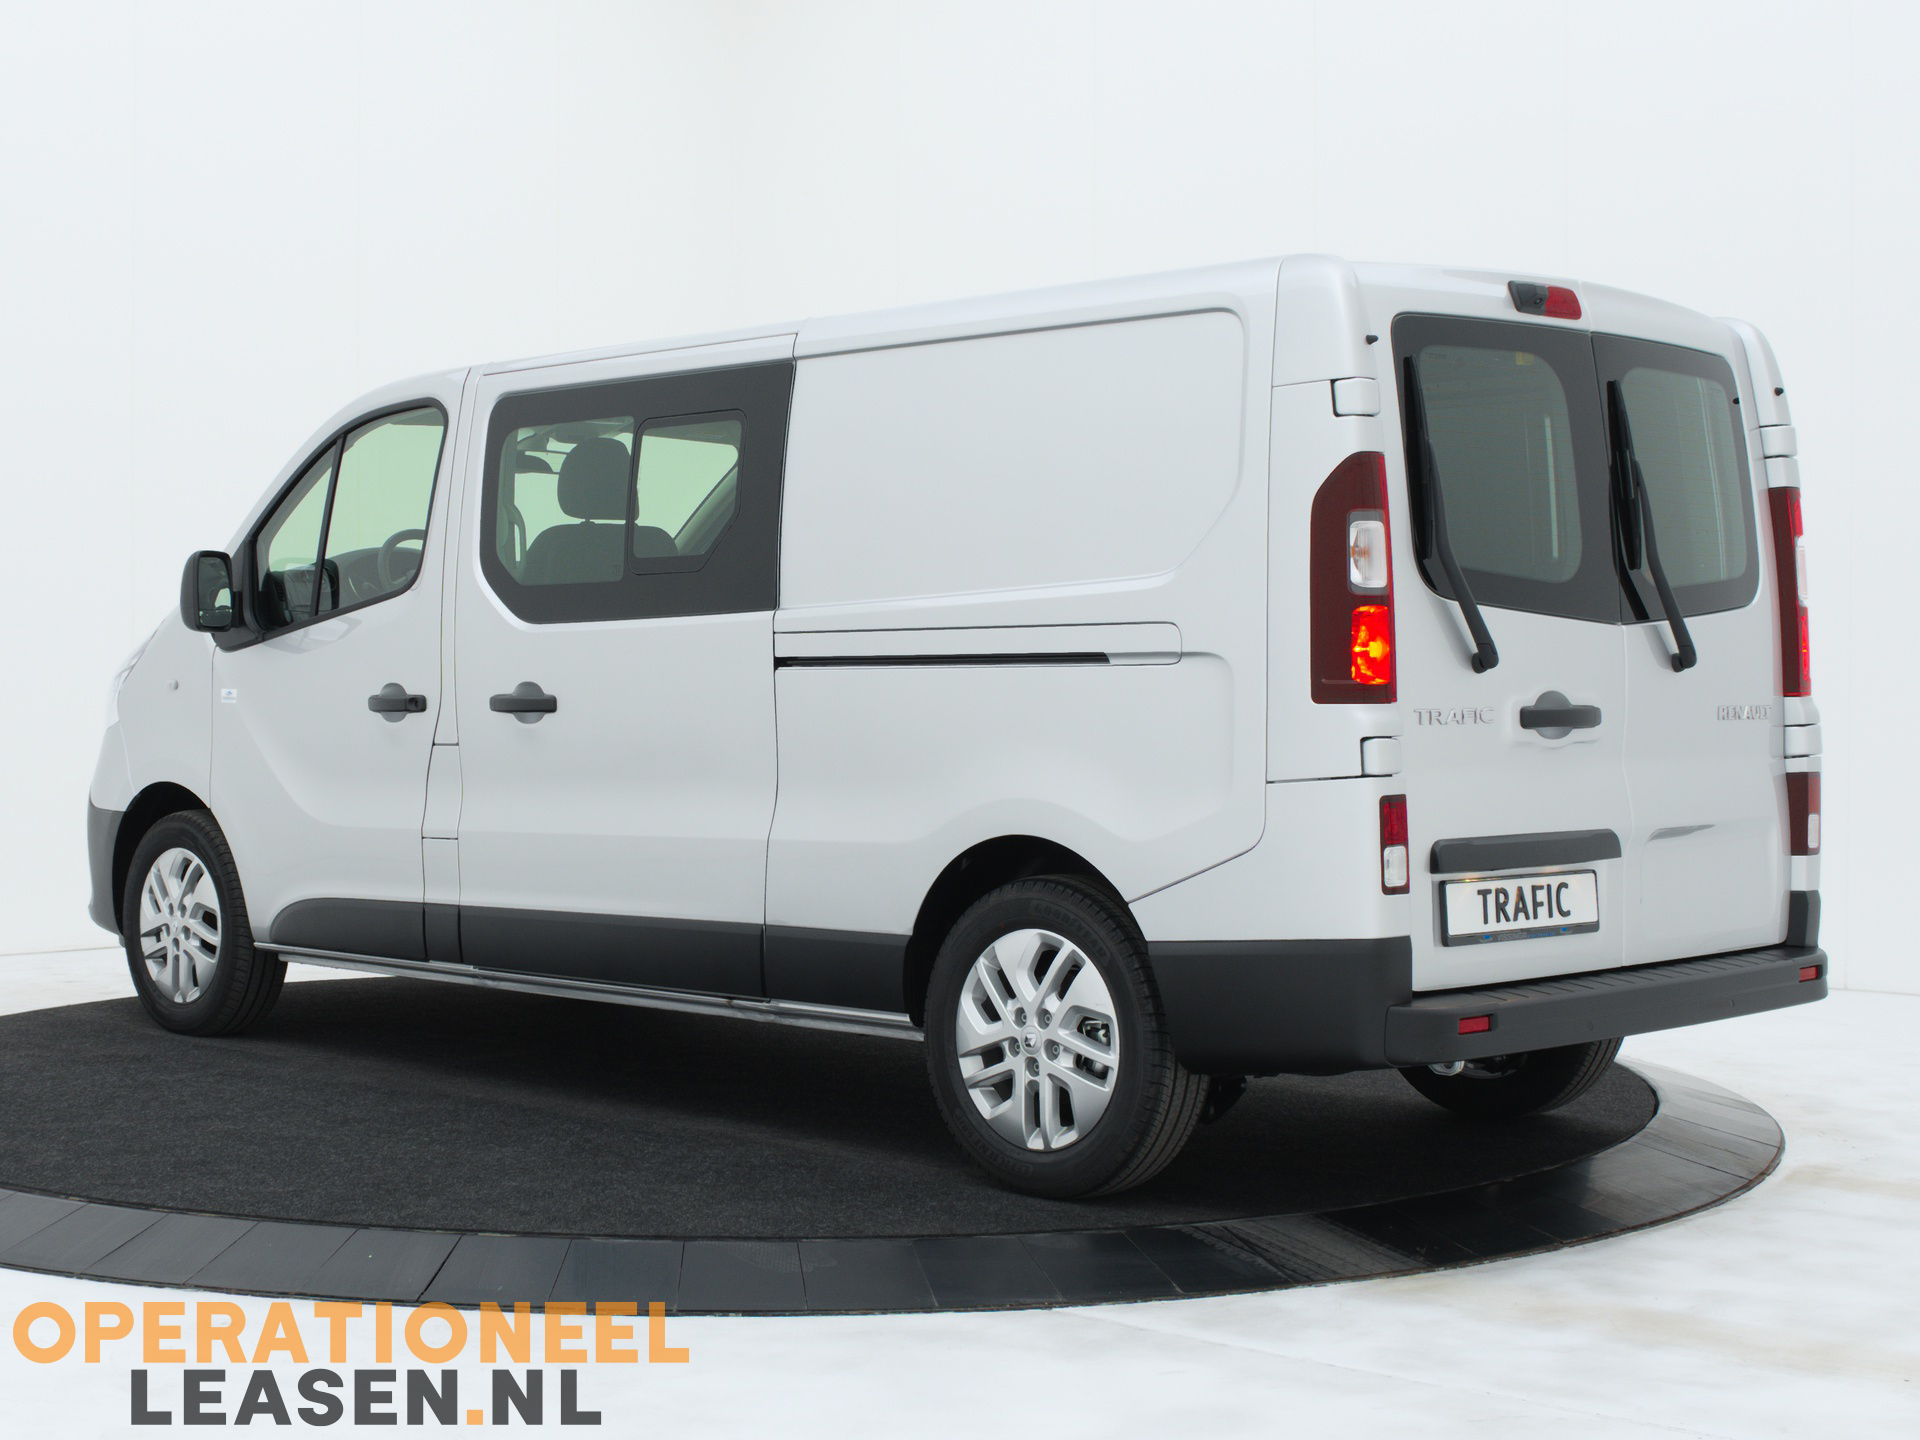 Operational lease Renault master traffic-6